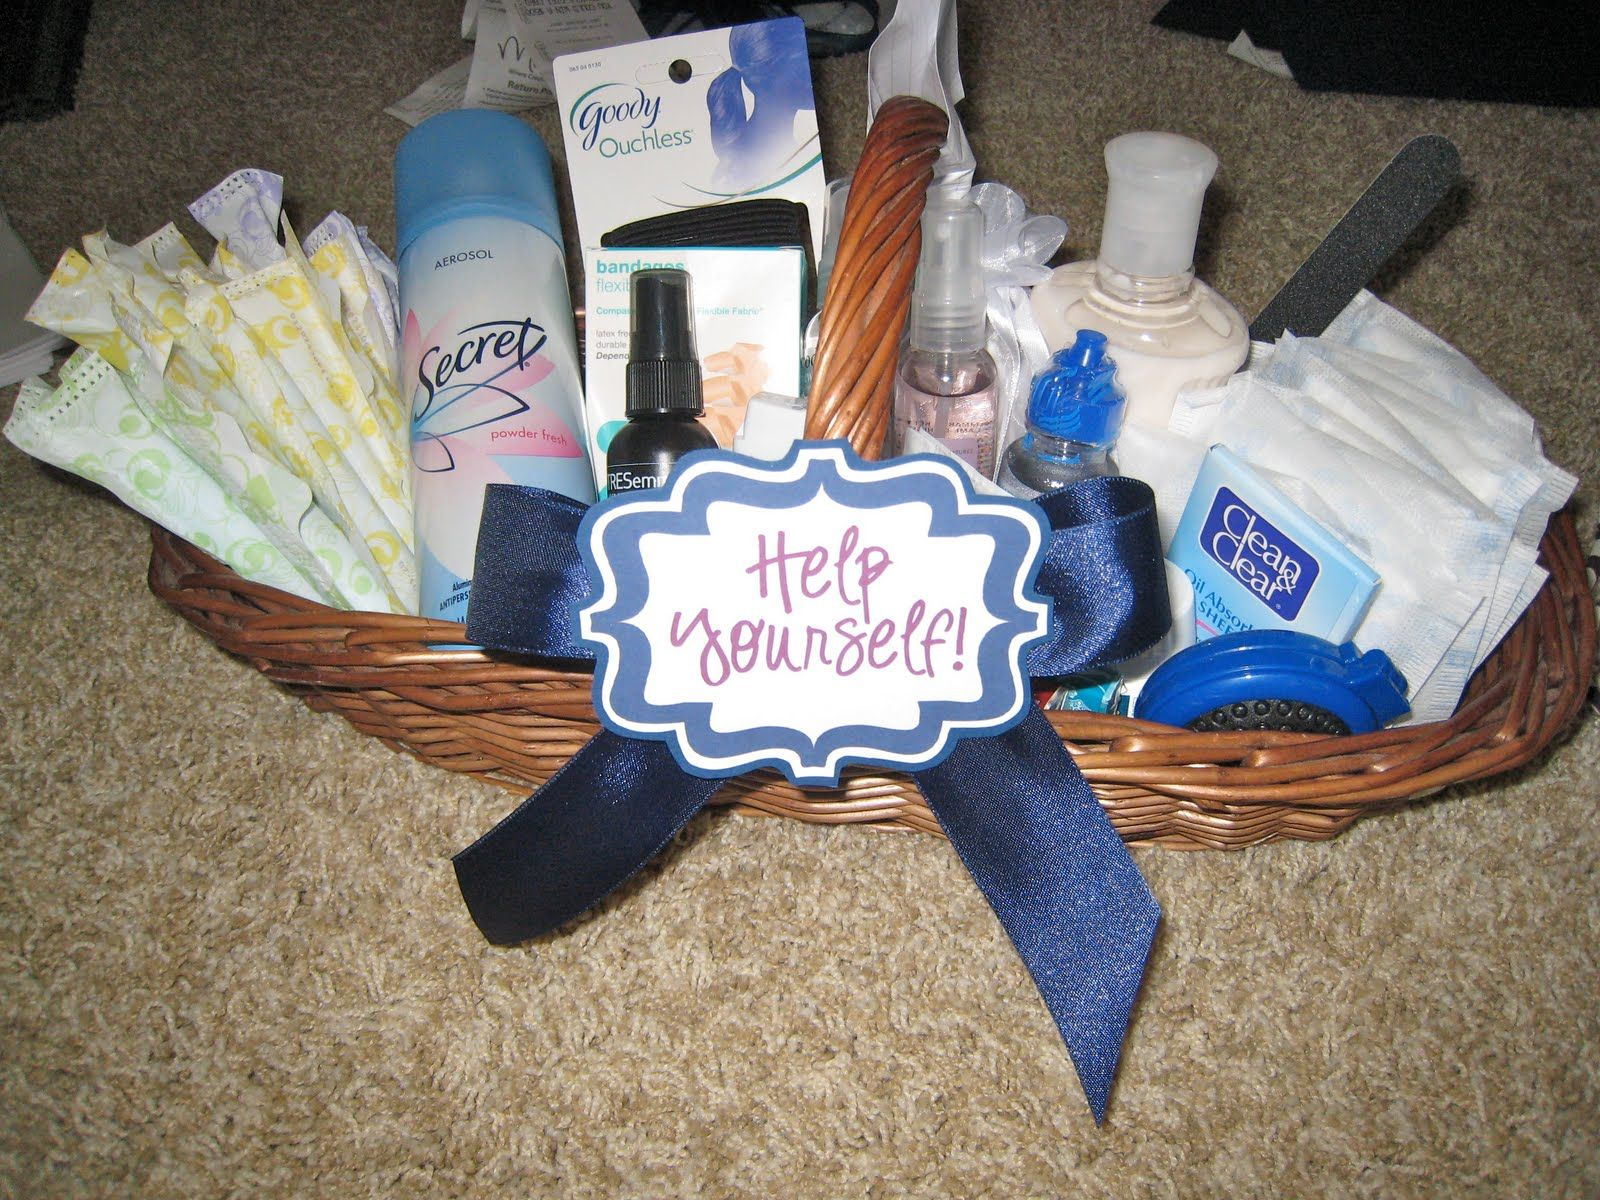 wedding bathroom basket ideas quot look what i made quot bathroom basket edition bathroom basket wedding 5251